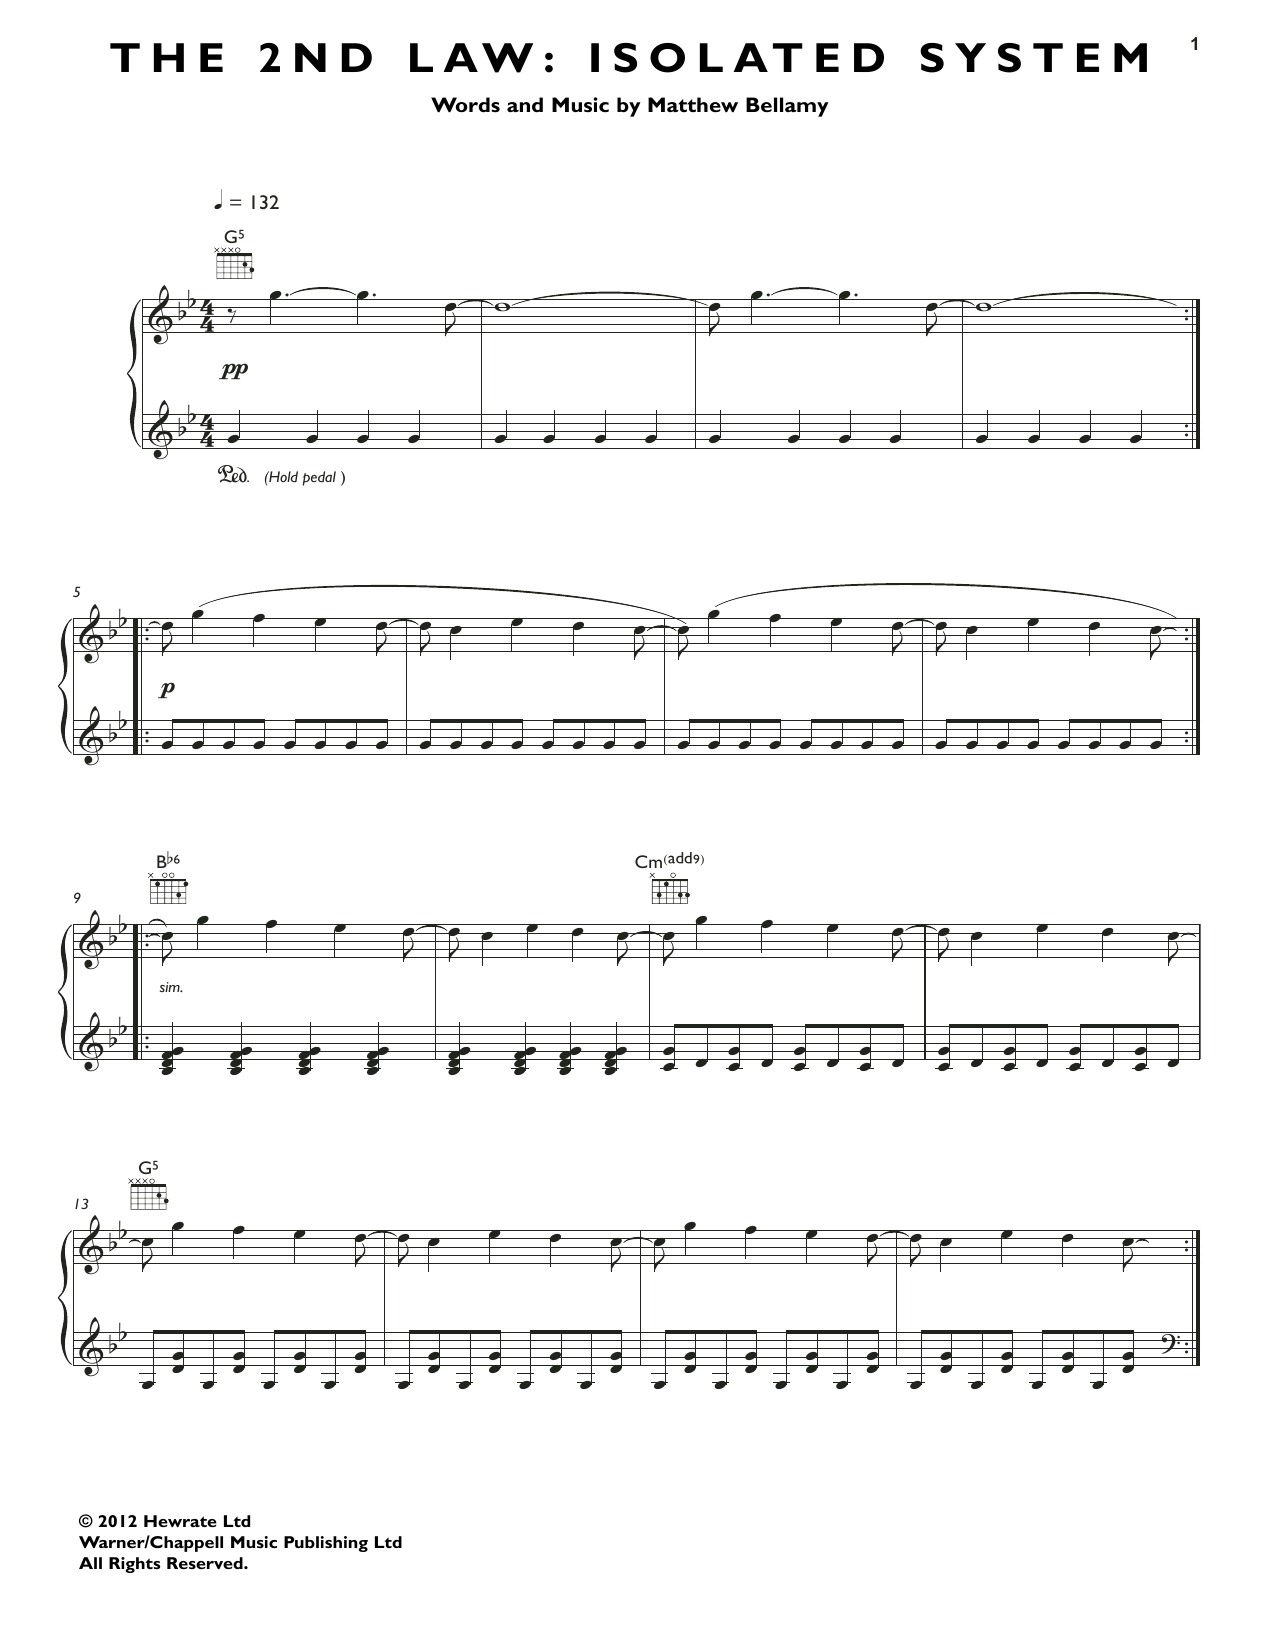 The 2nd Law: Isolated System Sheet Music